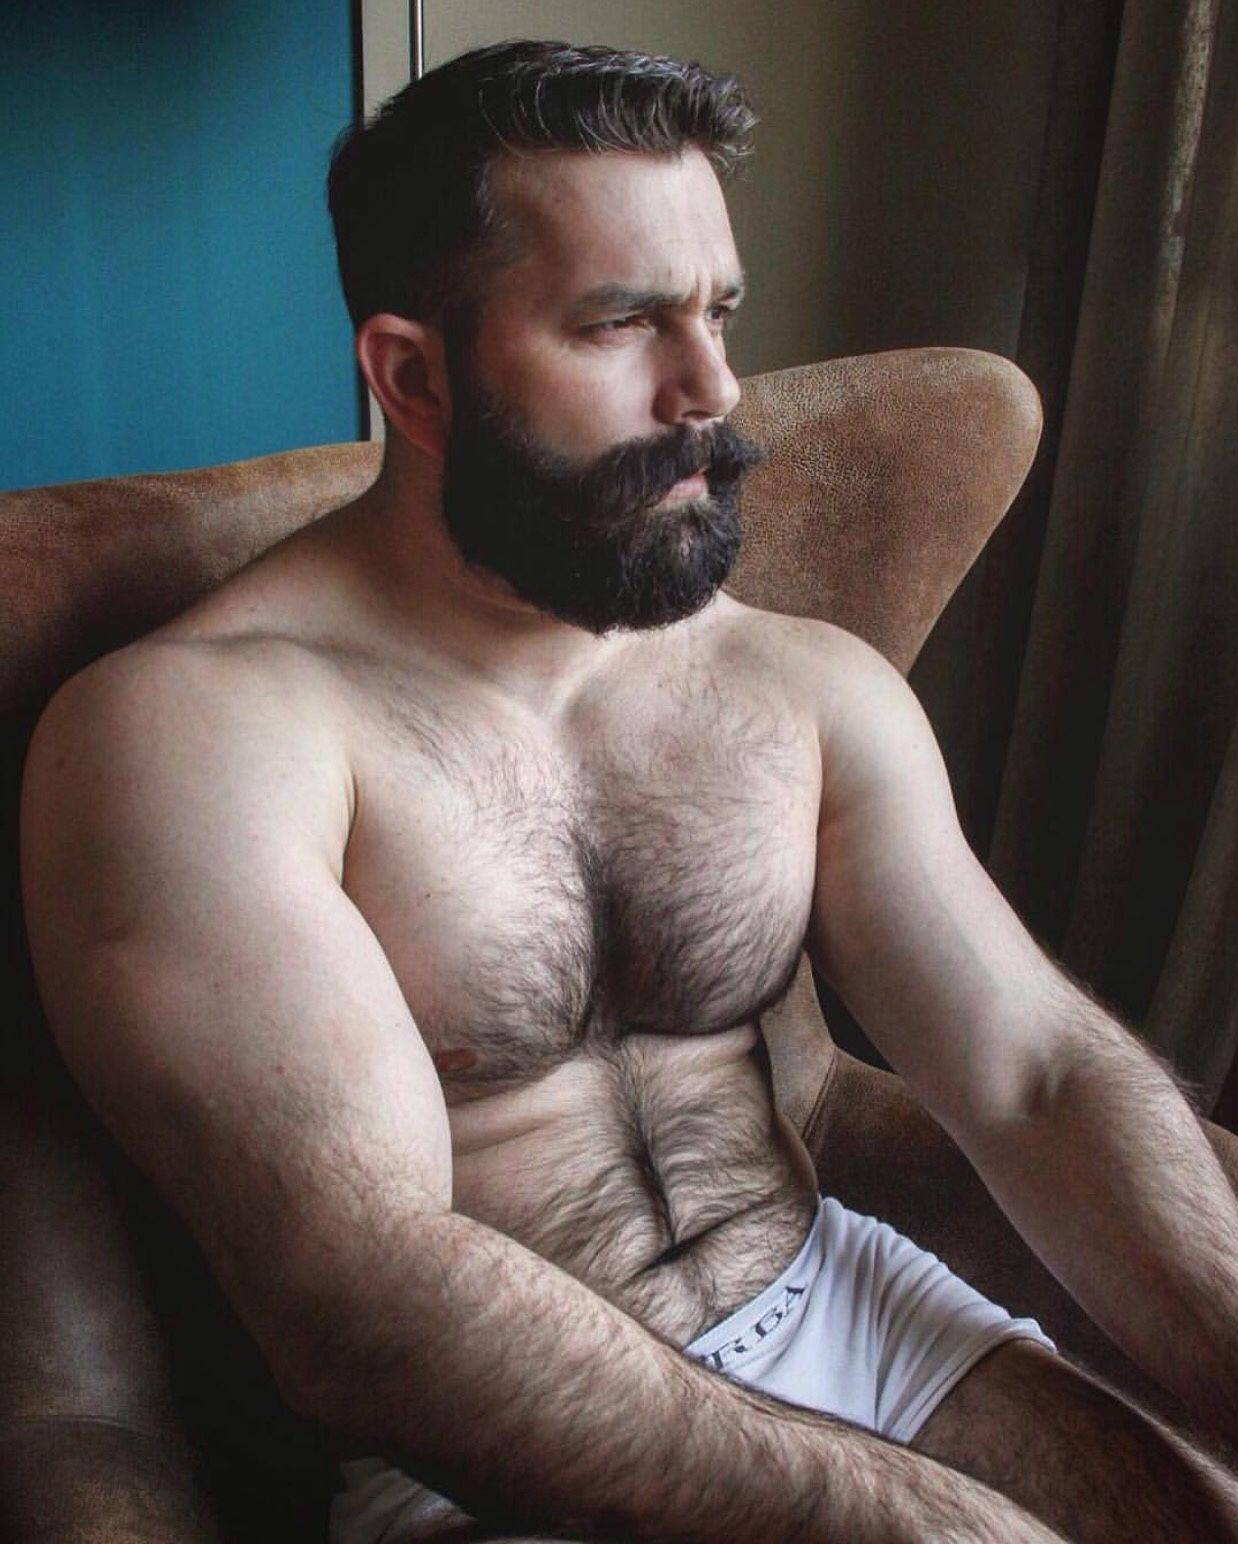 Me Guy Man Smile Fun Feelinggood Motivation Funday Bear Bearded Hunk Scruff Manwithbeards Photo Underwear Noshavenovember November